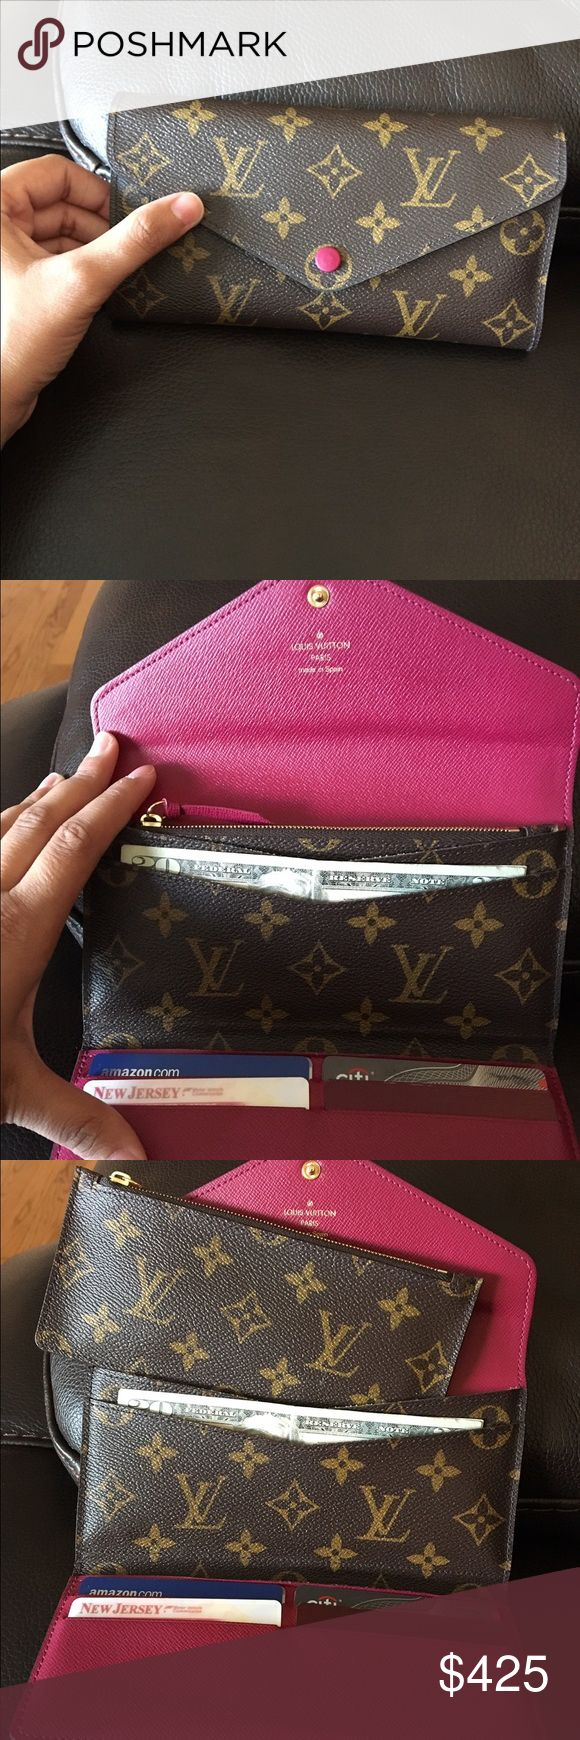 Louis Vuitton Josephine Wallet 100% Authentic like NEW. Comes with coin pouch. No dust bag or box. Louis Vuitton Bags Wallets